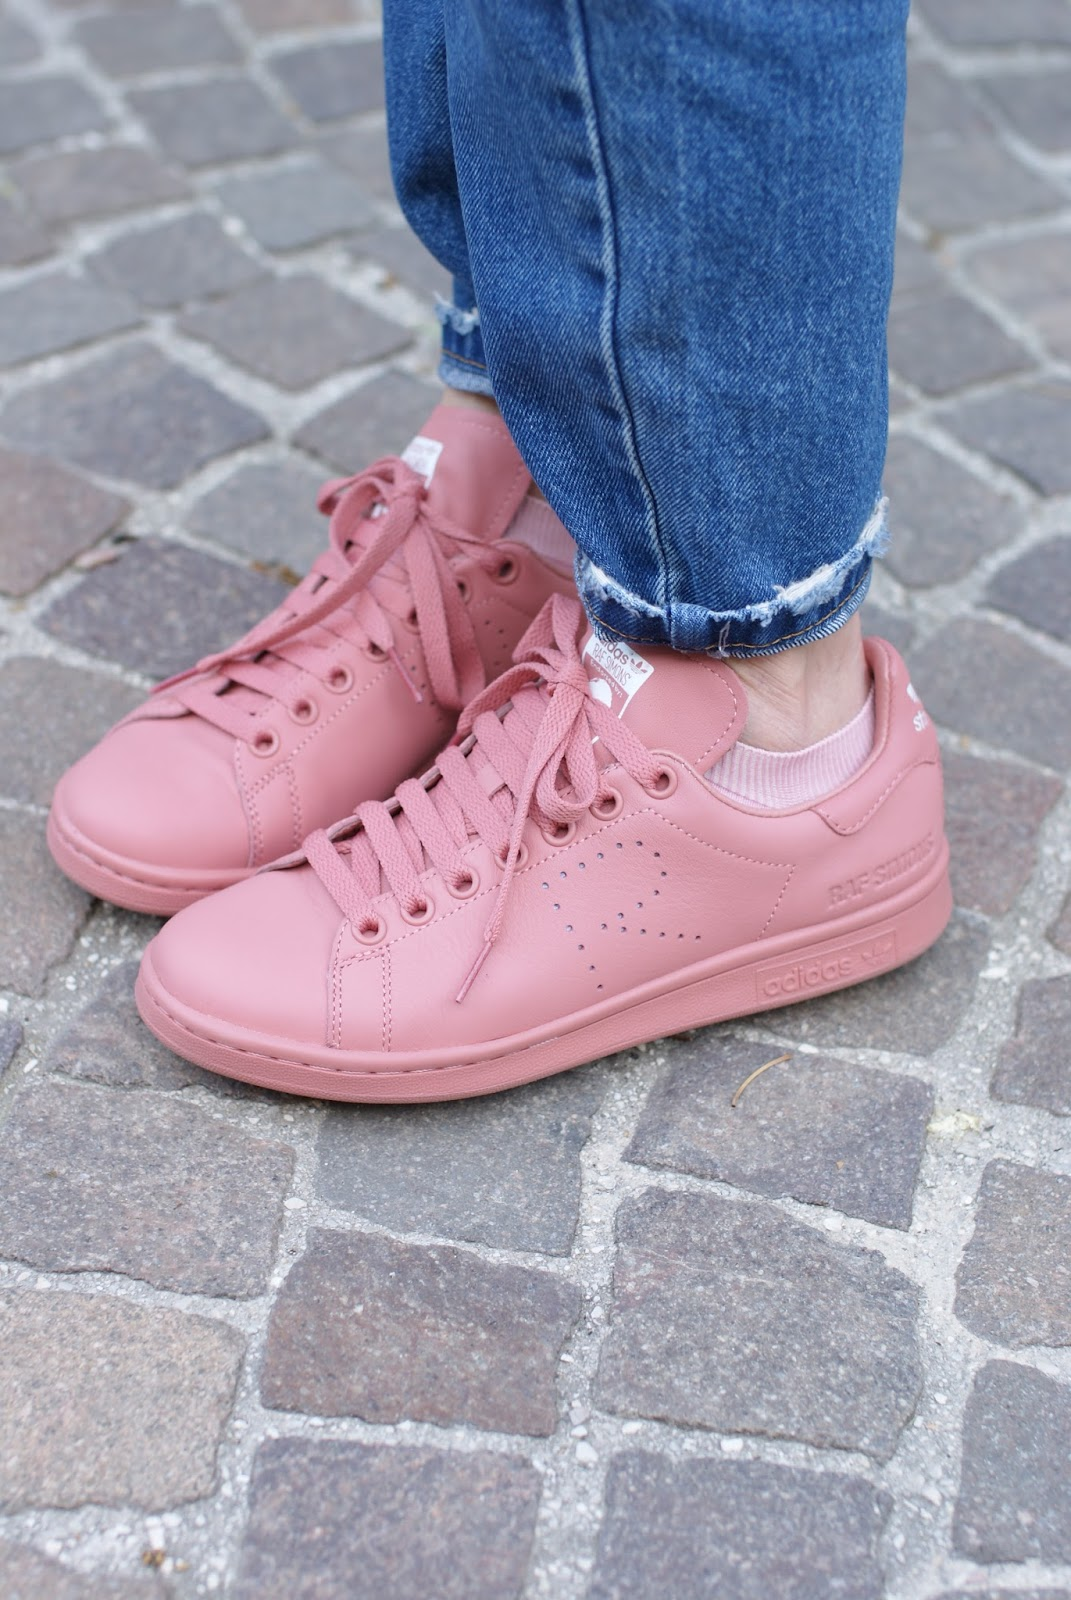 Pink Raf Simons x Adidas Stan Smith sneakers on Fashion and Cookies fashion blog